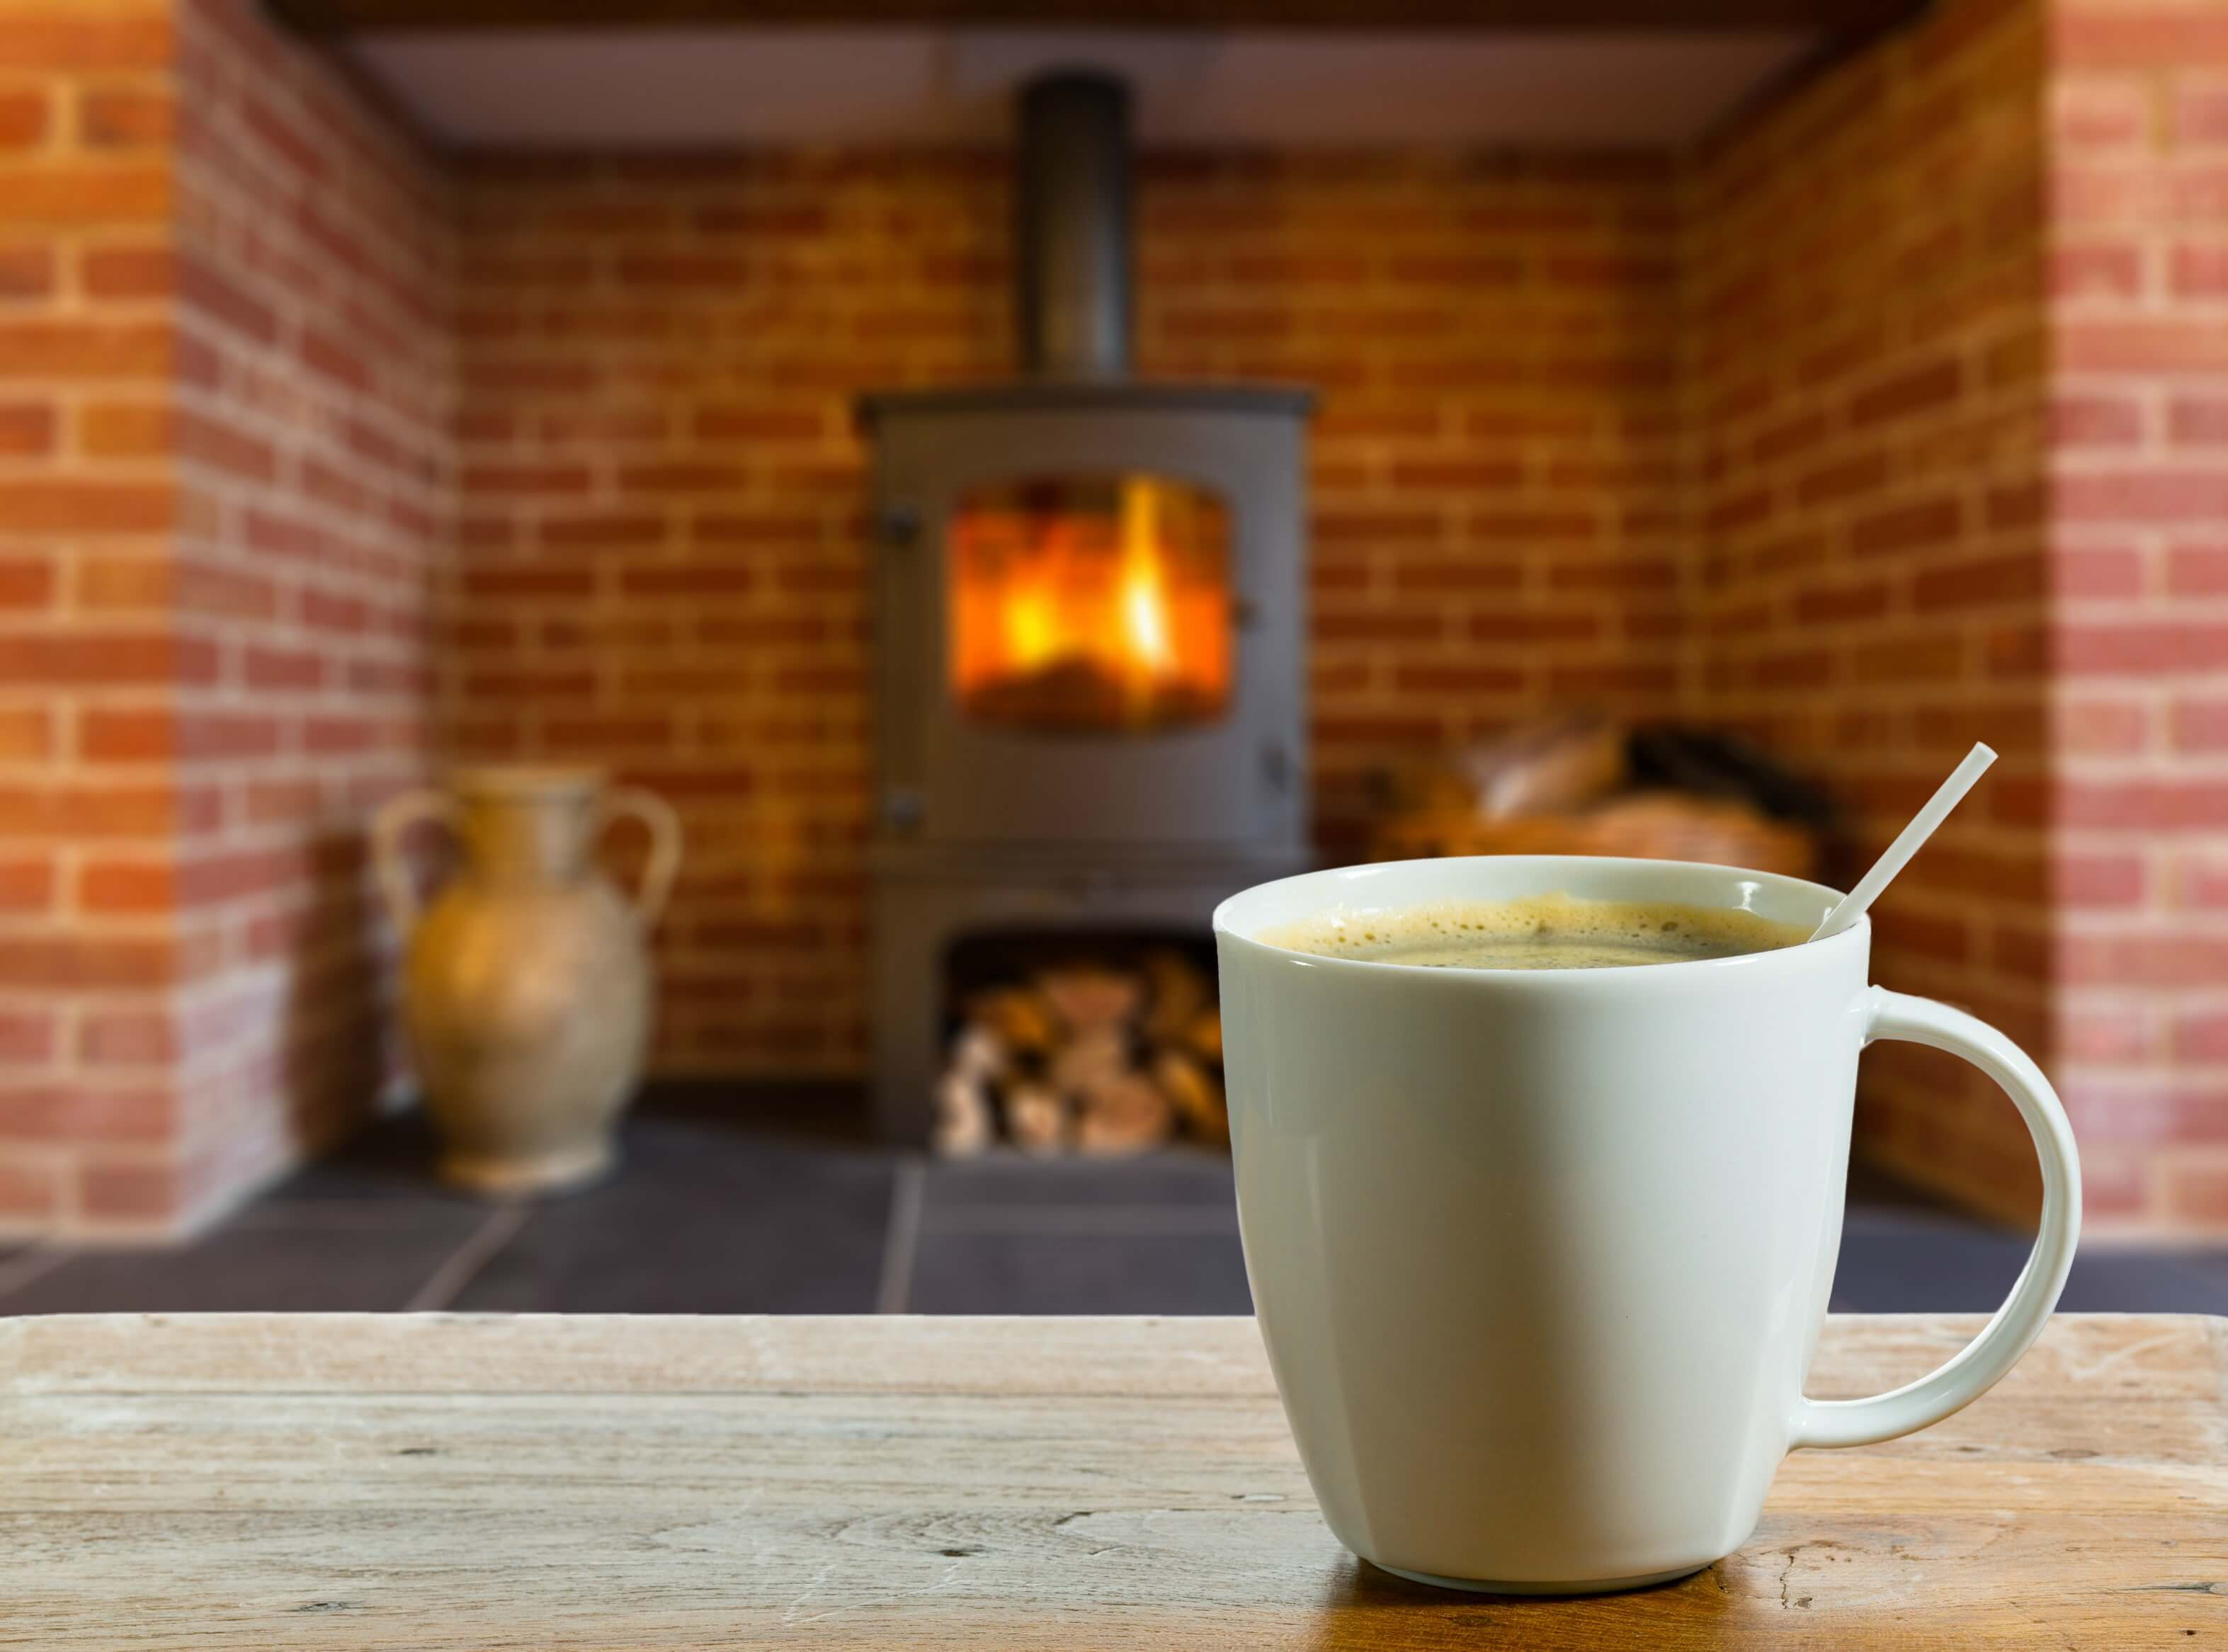 get your home ready for winter - mug of hot chocolate in front of a wood burning stove